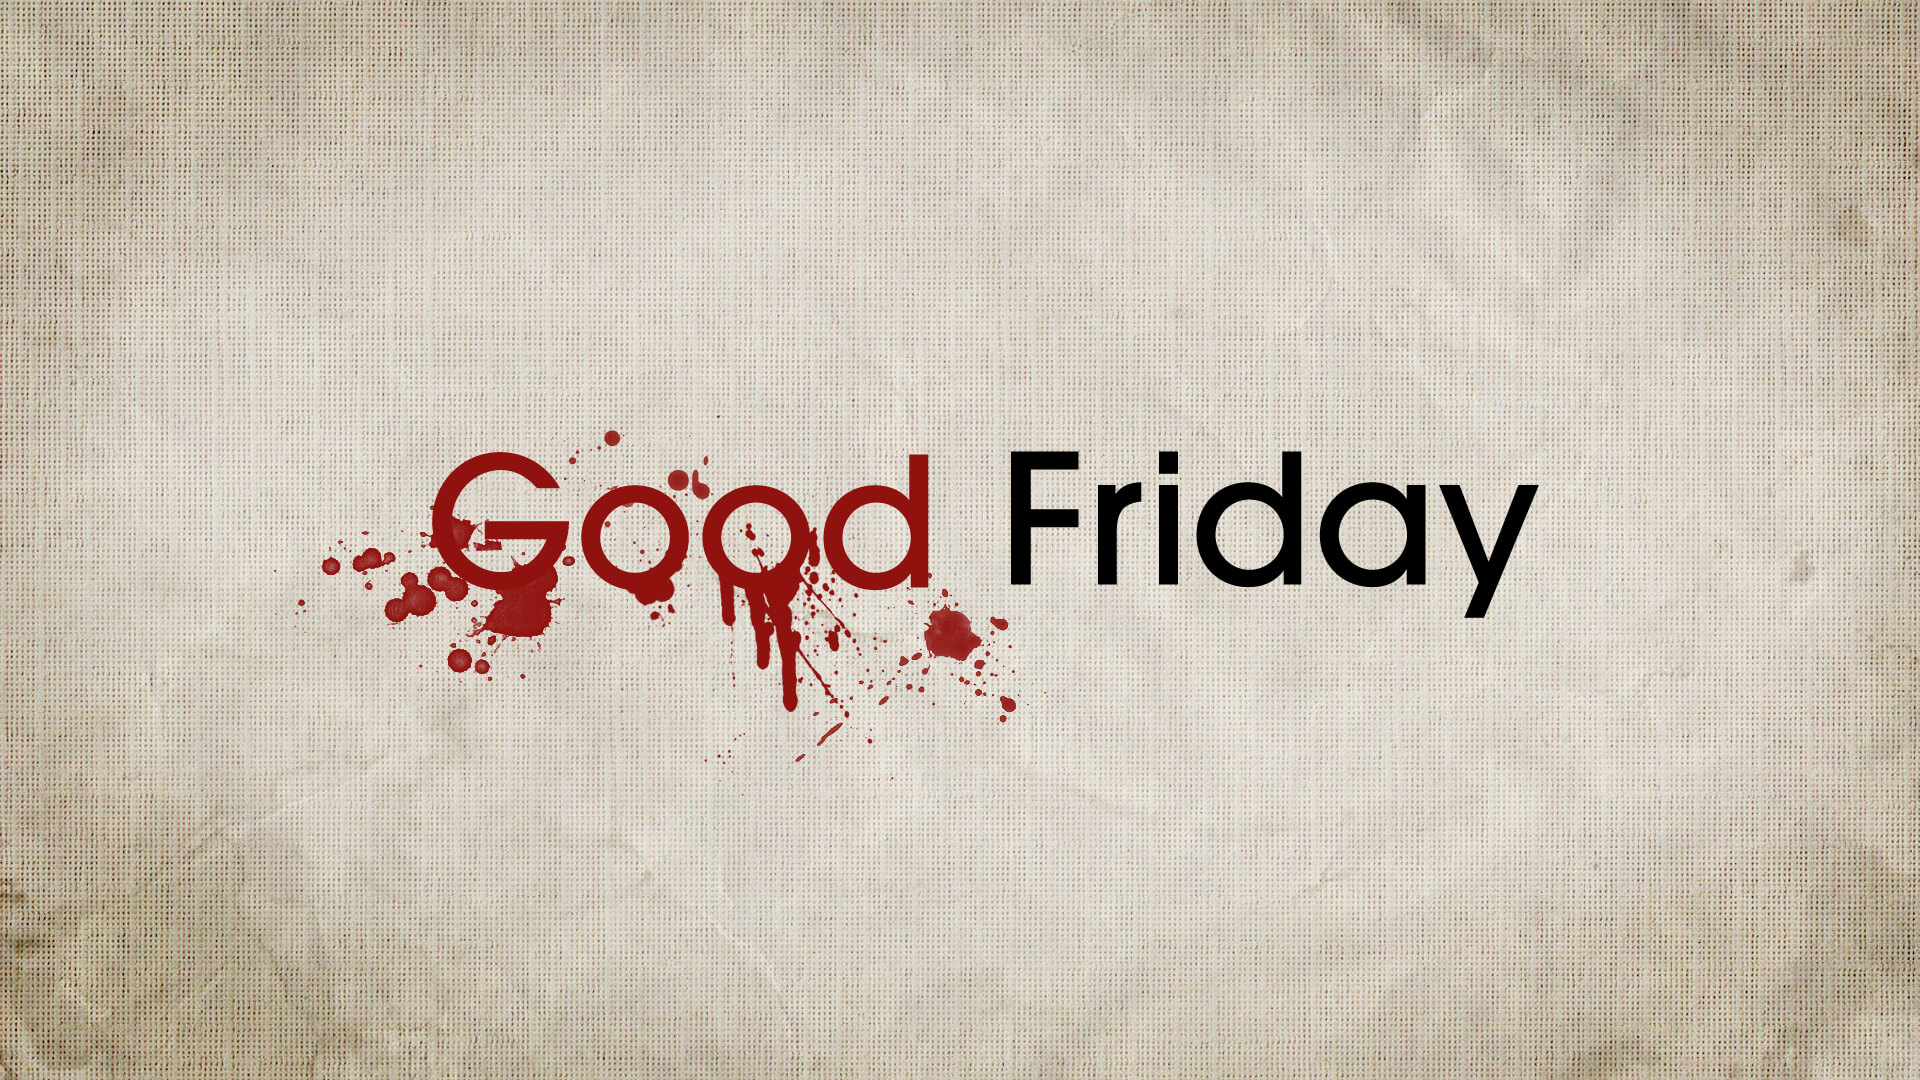 good friday wallpaper for desktop background